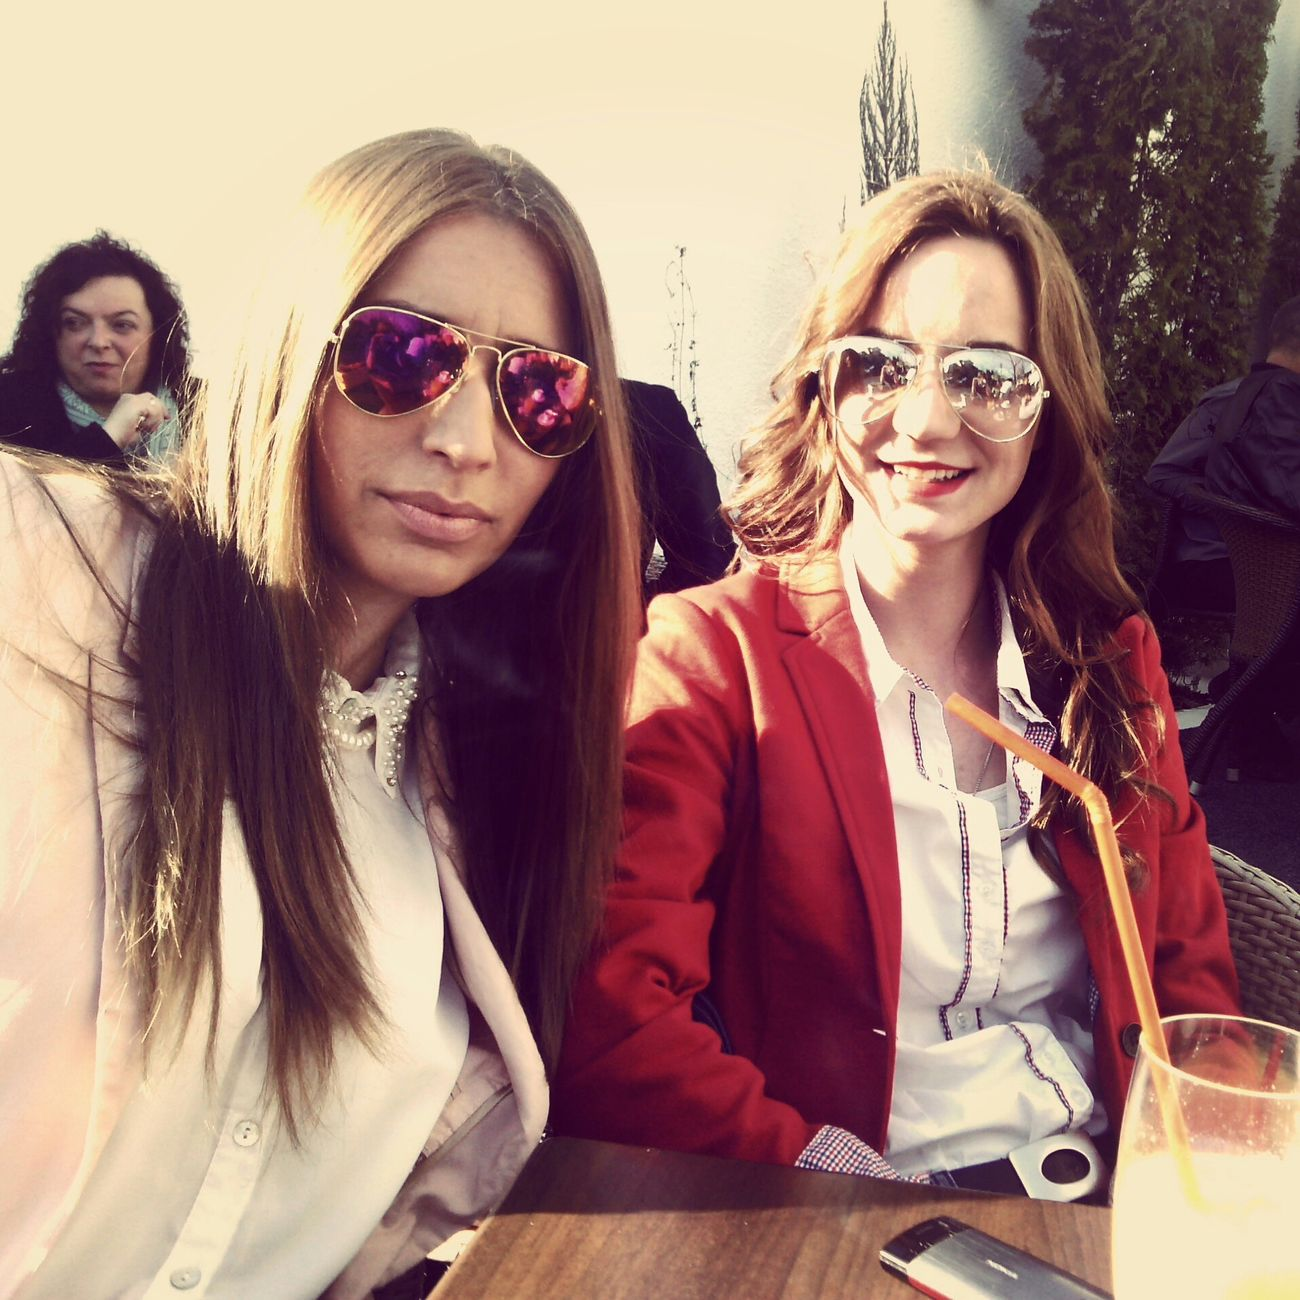 Friend and Me Sunny Day Hi! Coffee Time Relax